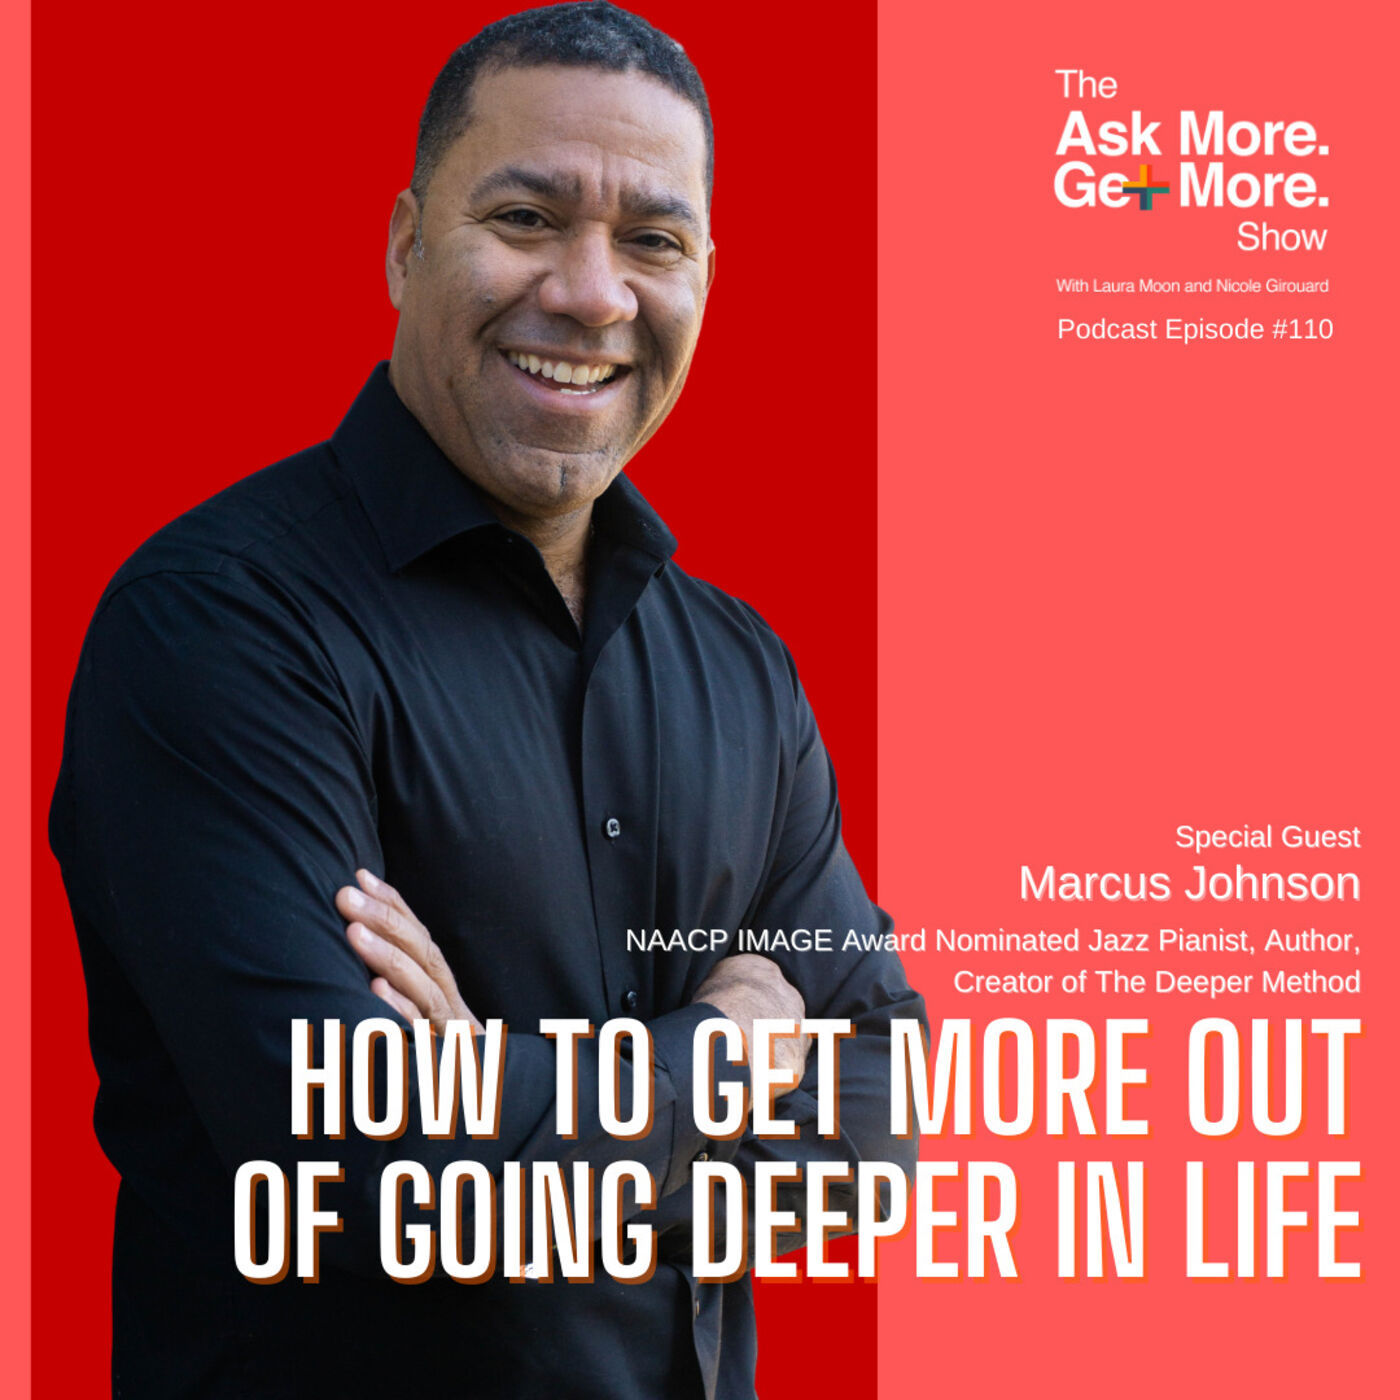 How to Go Deeper In Life - Wine, Music and Education [Marcus Johnson]